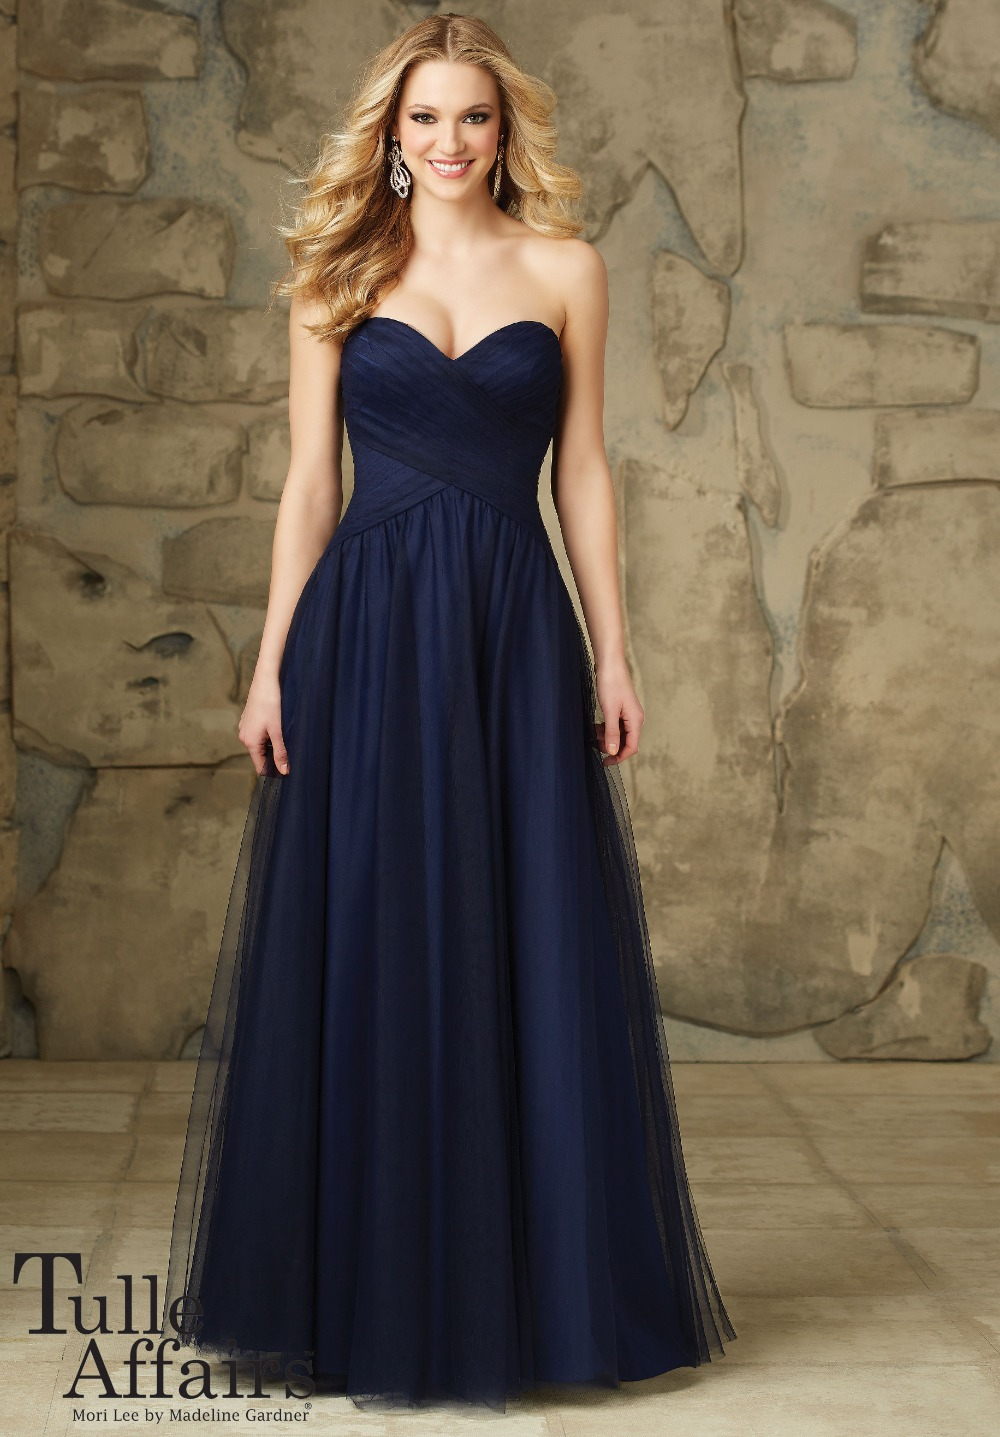 Aliexpress buy strapless pleat tulle long navy blue aliexpress buy strapless pleat tulle long navy blue bridesmaid dresses from reliable bridesmaid dress evening dress suppliers on vivintong bridals ombrellifo Image collections